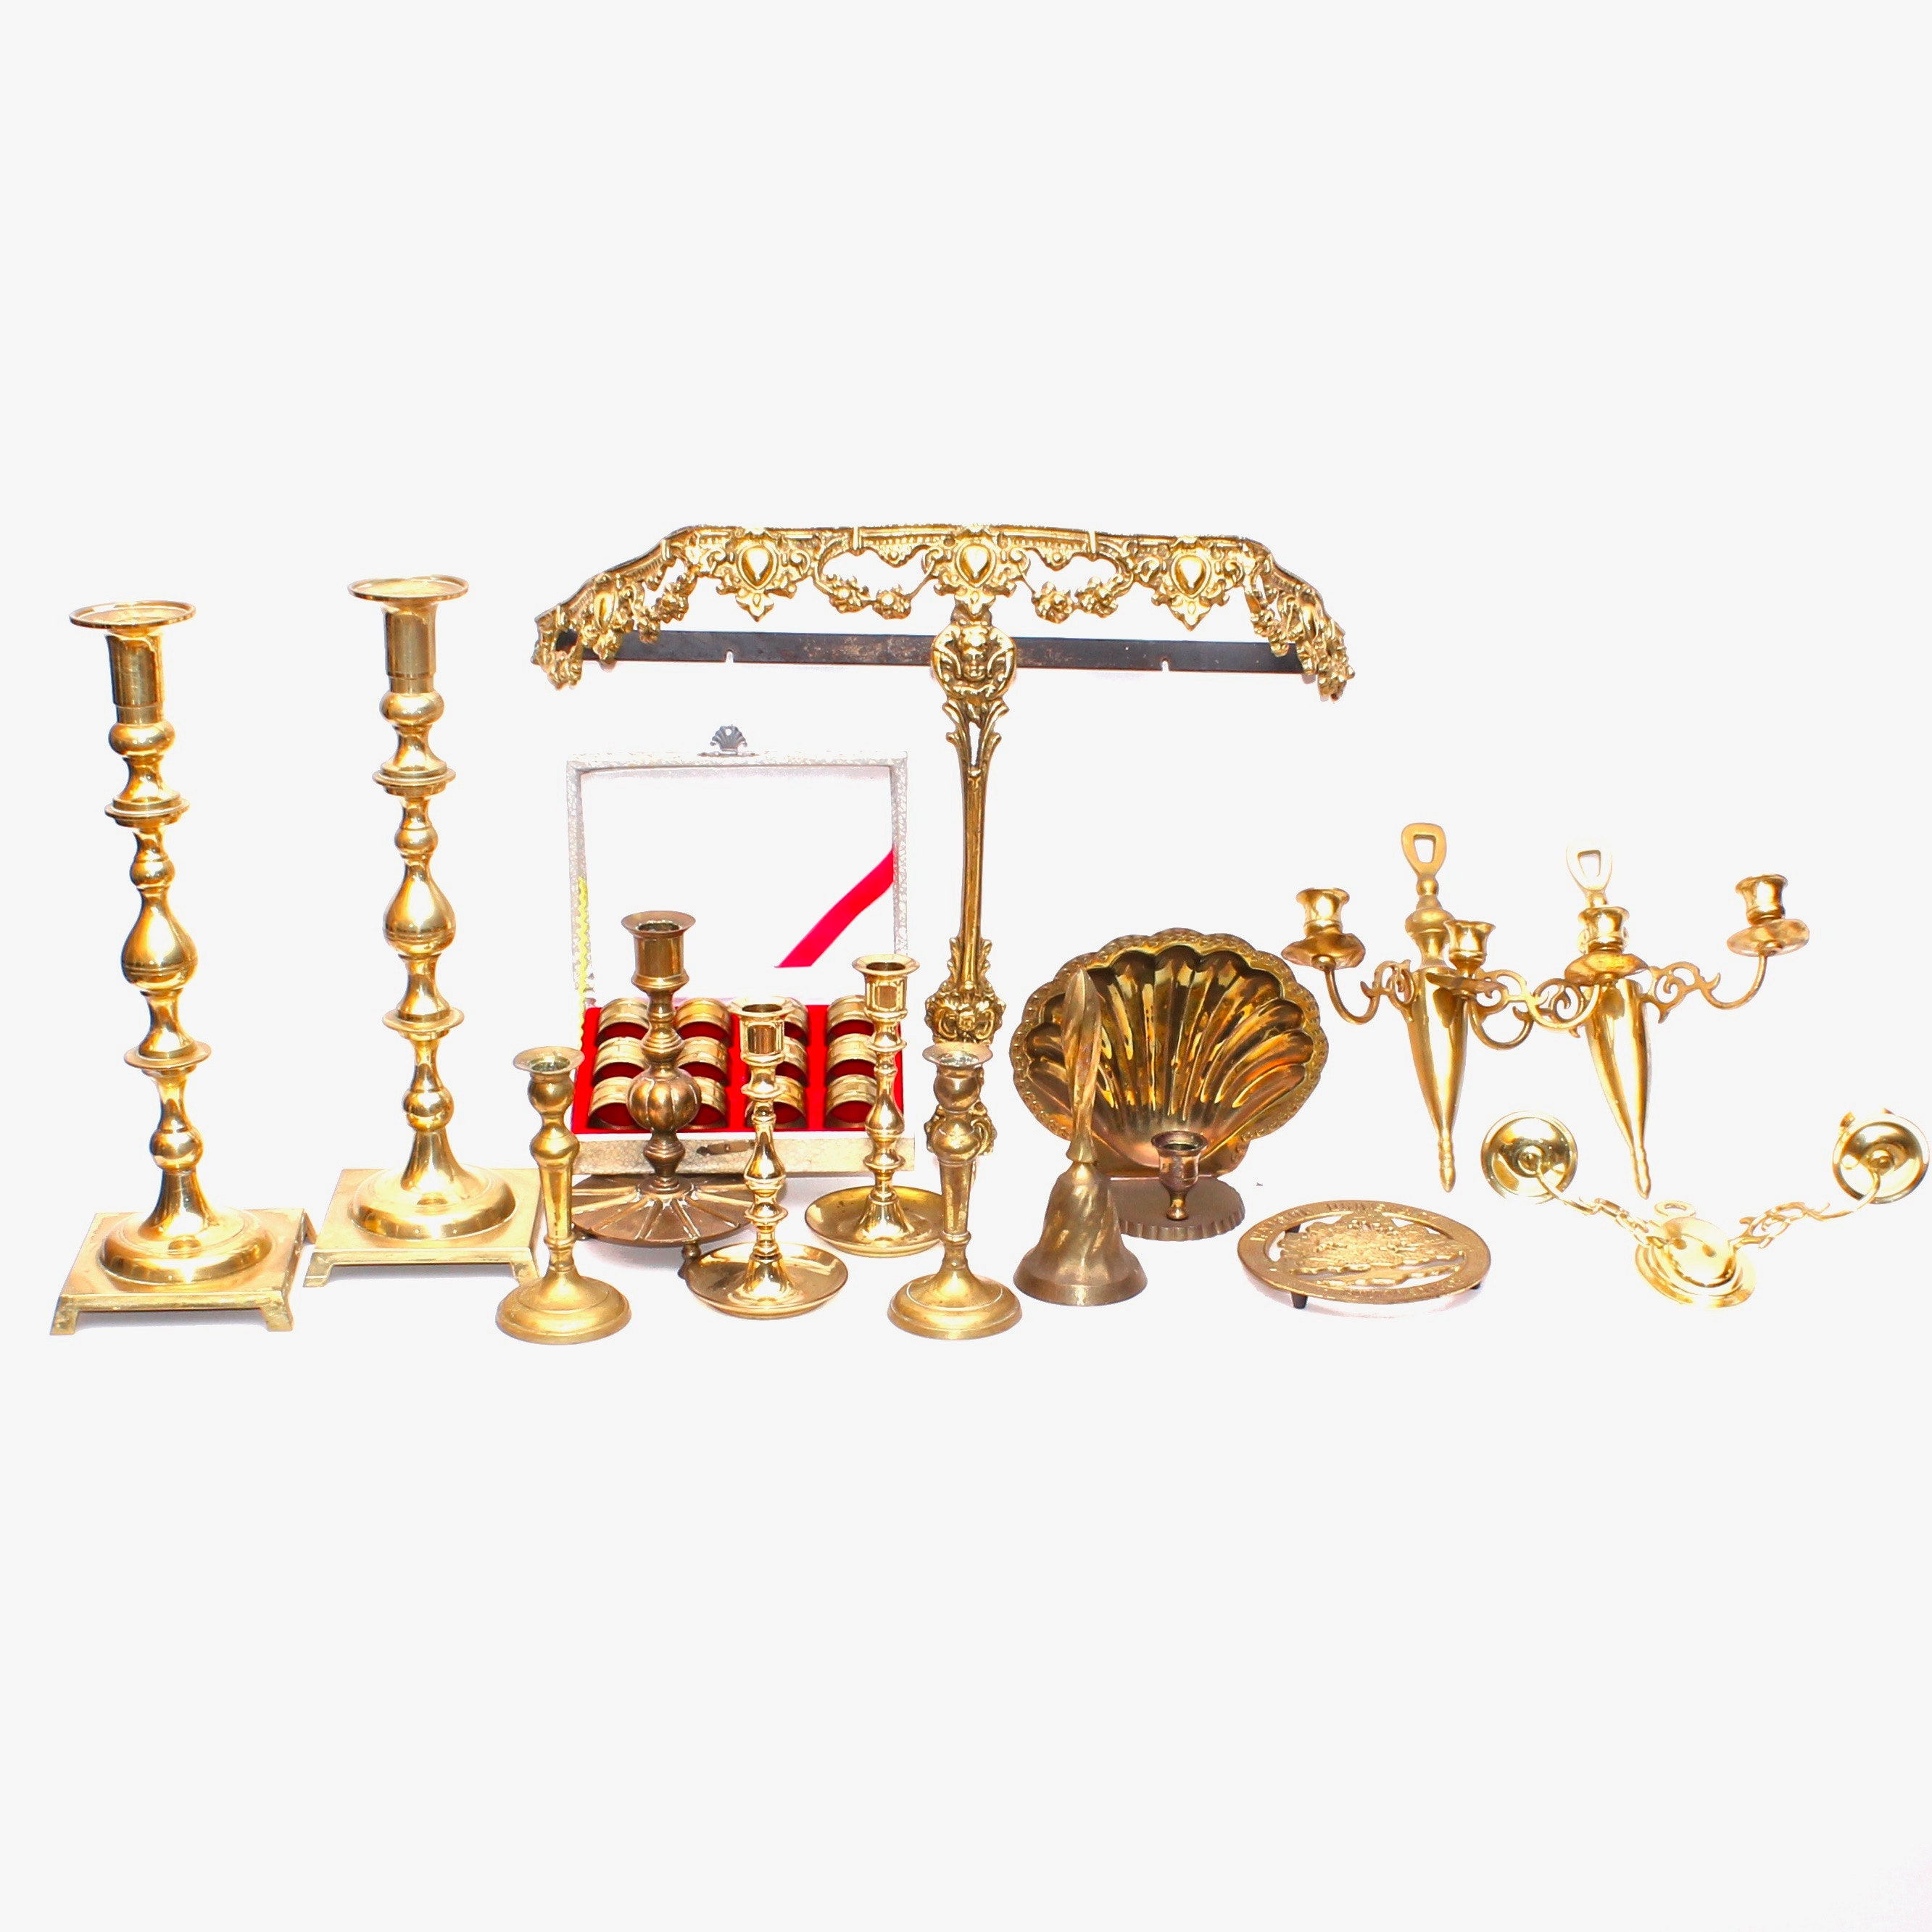 Brass Candle Holders, Candle Sconces, and Decor